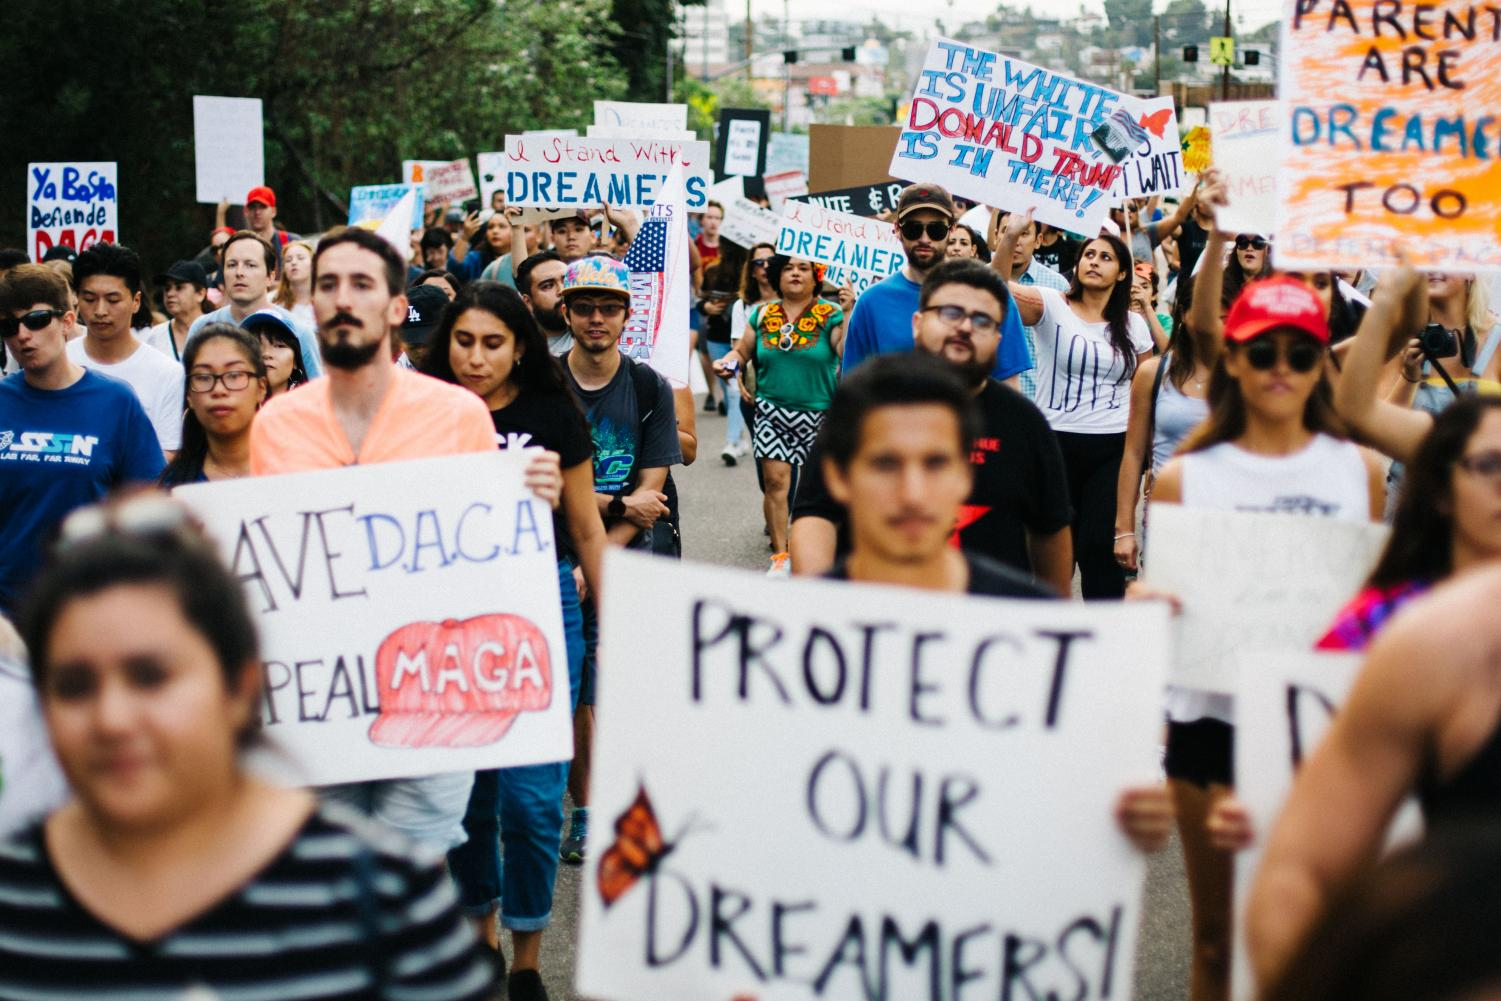 Protesters in Los Angeles march to protect the rights of Dreamers.  (Photo courtesy of Molly Adams)